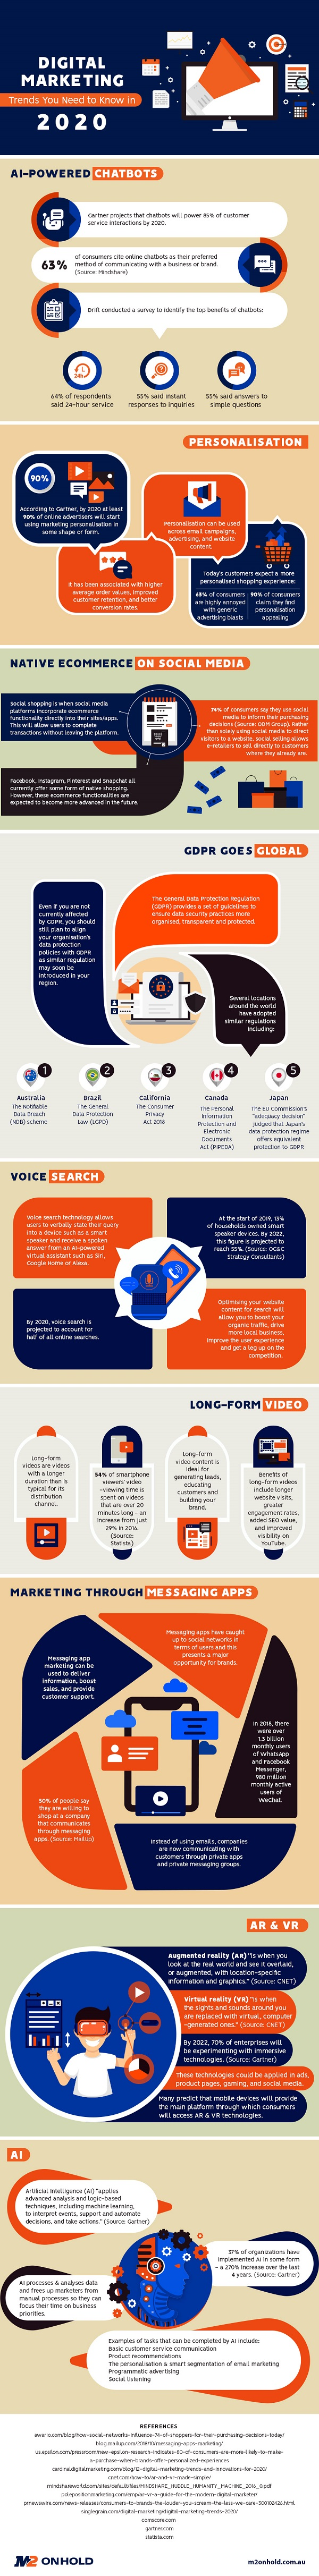 infographic of digital marketing trends 2021